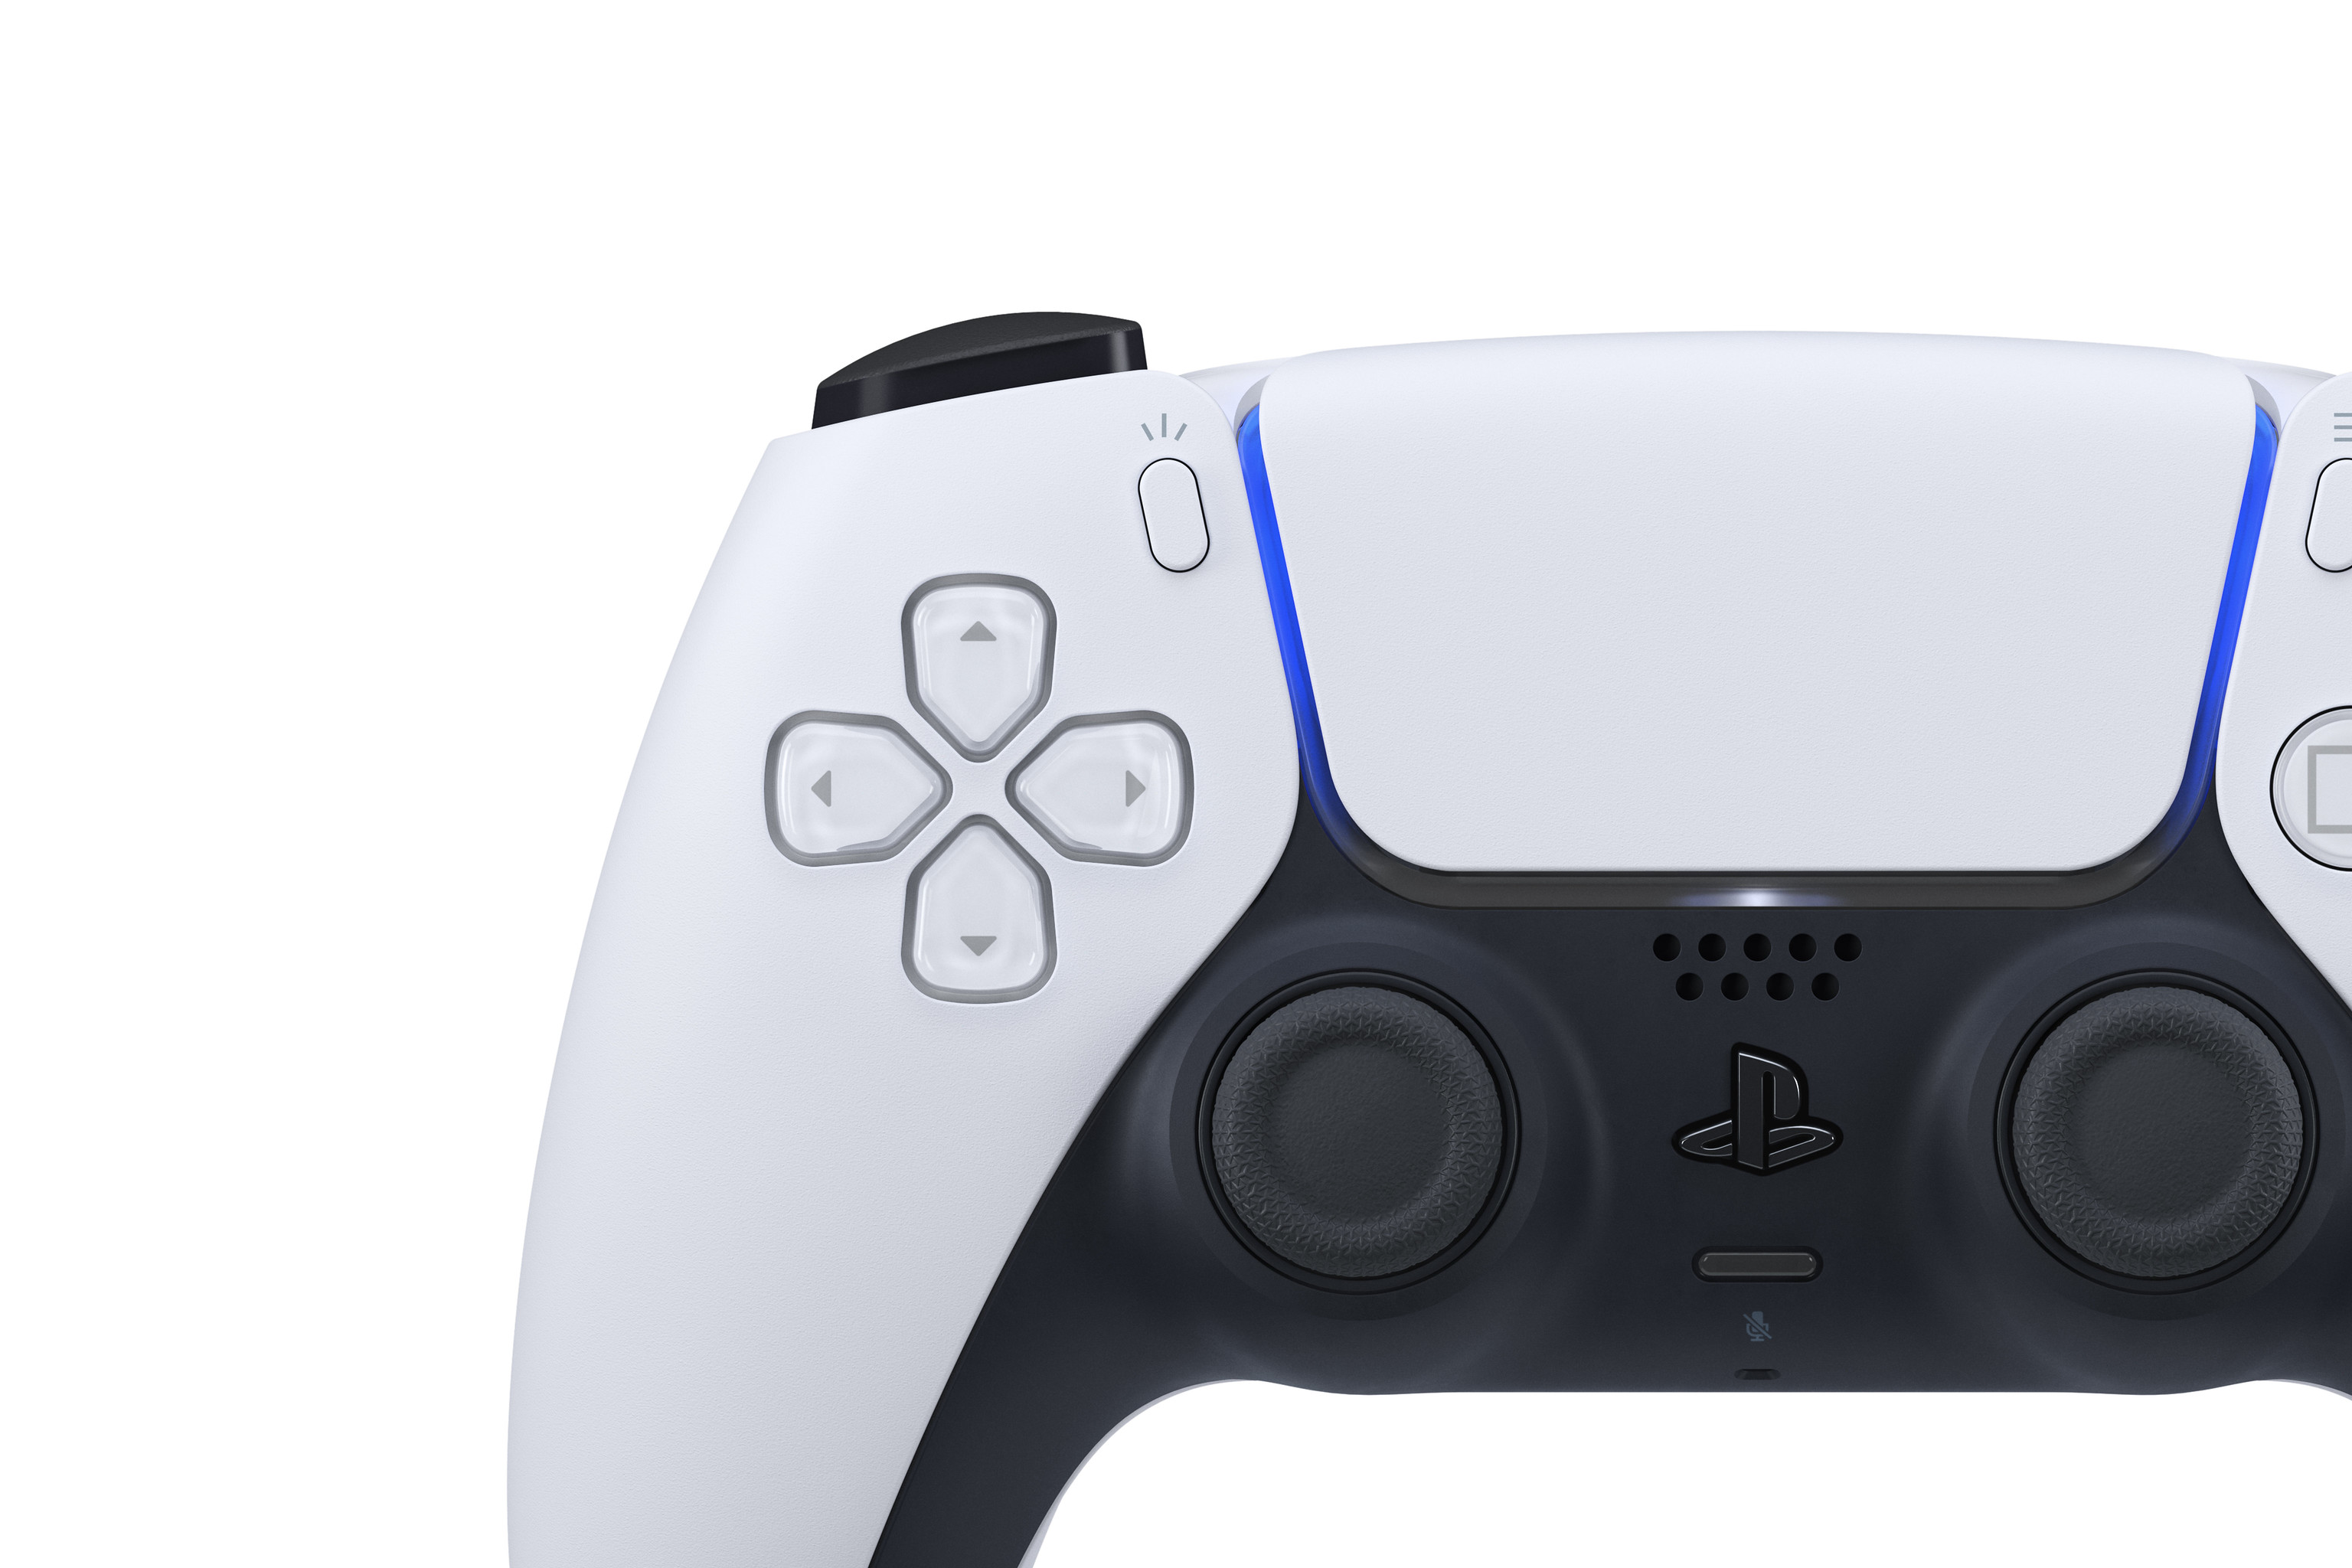 Gamers React To News PS4's Controller Won't Work With PS5 Games